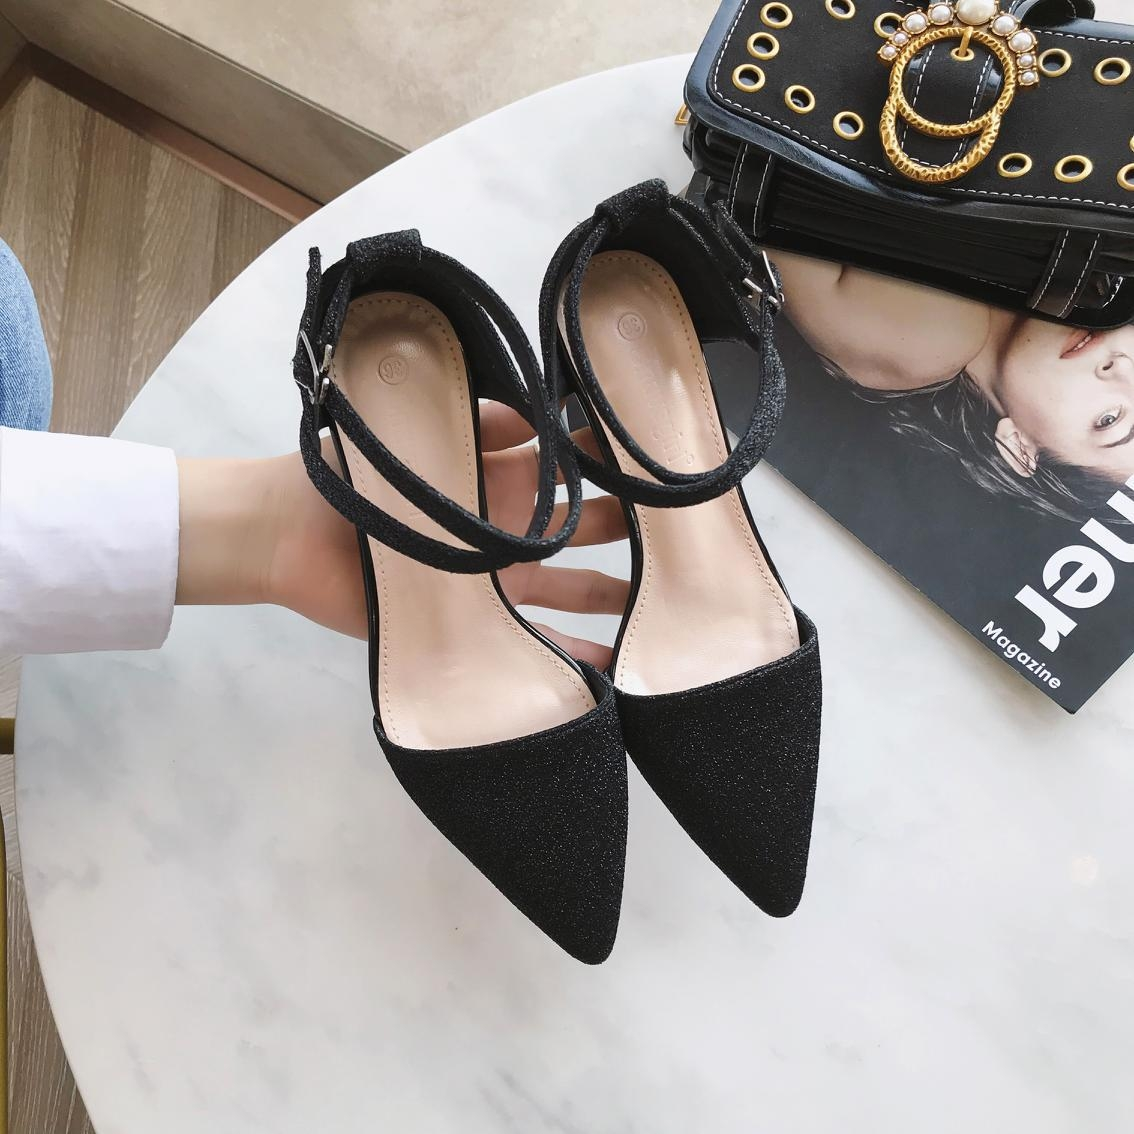 703b8739eca Korean Version With Thick Single Lace Pointed High Heels 2019 Amoi Heel  Women Sandals black 34  Product No  10812493. Item specifics  Seller  SKU DM-19167 ...